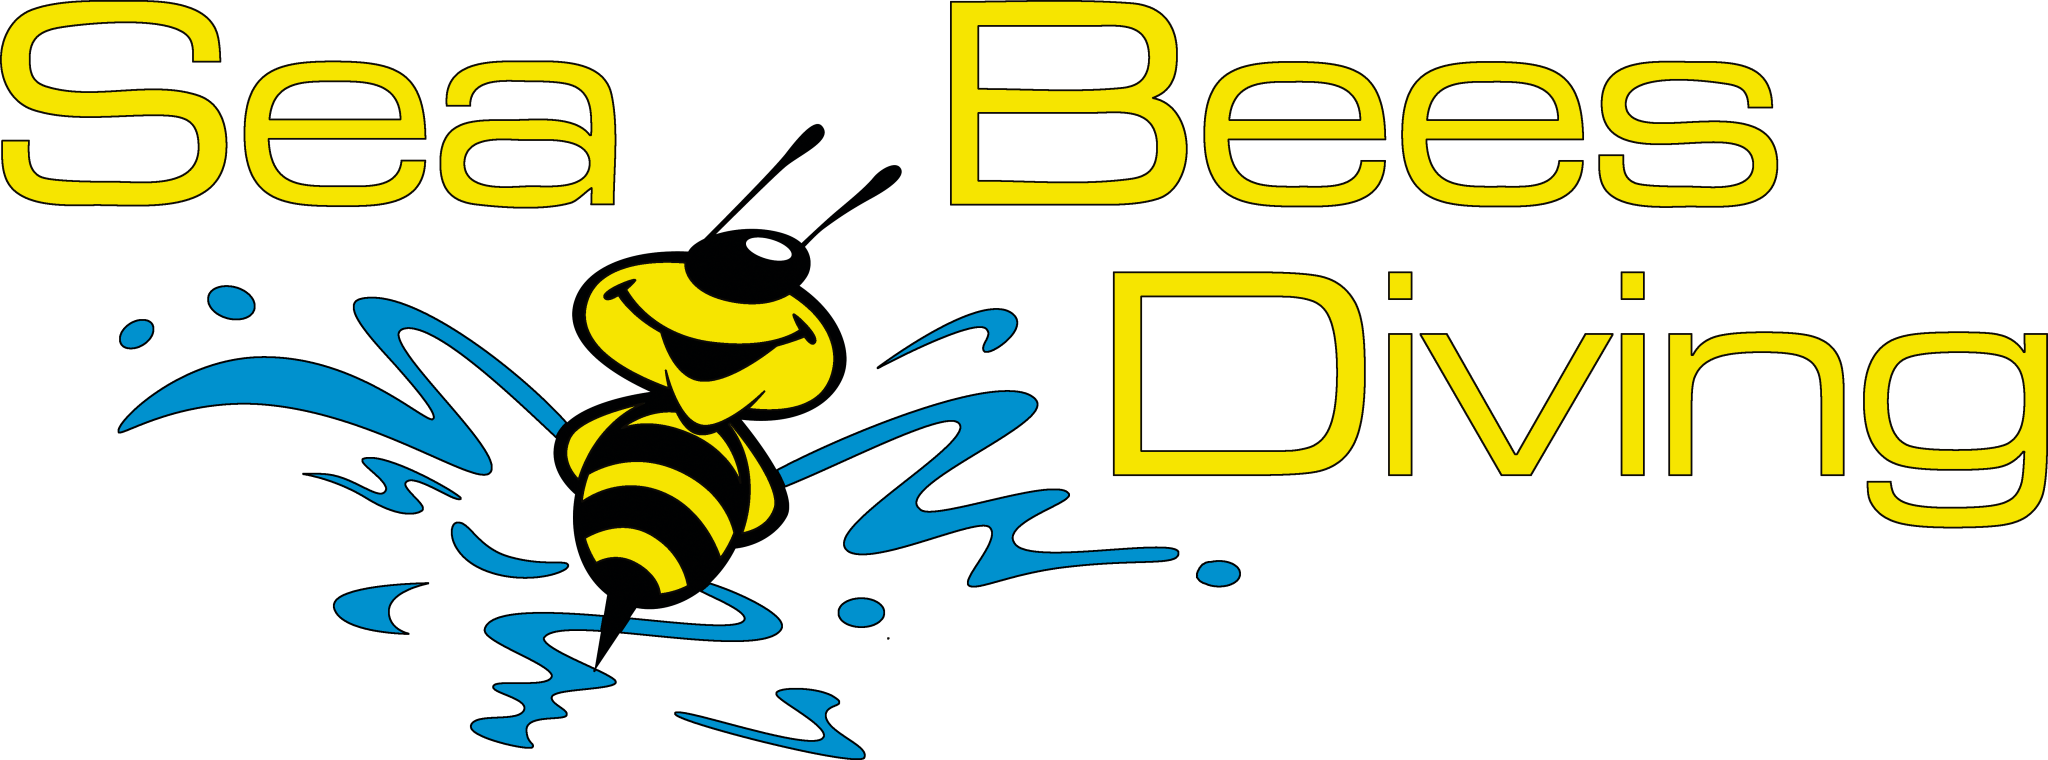 SB Logo trans 300dpi - Sea Bees Diving